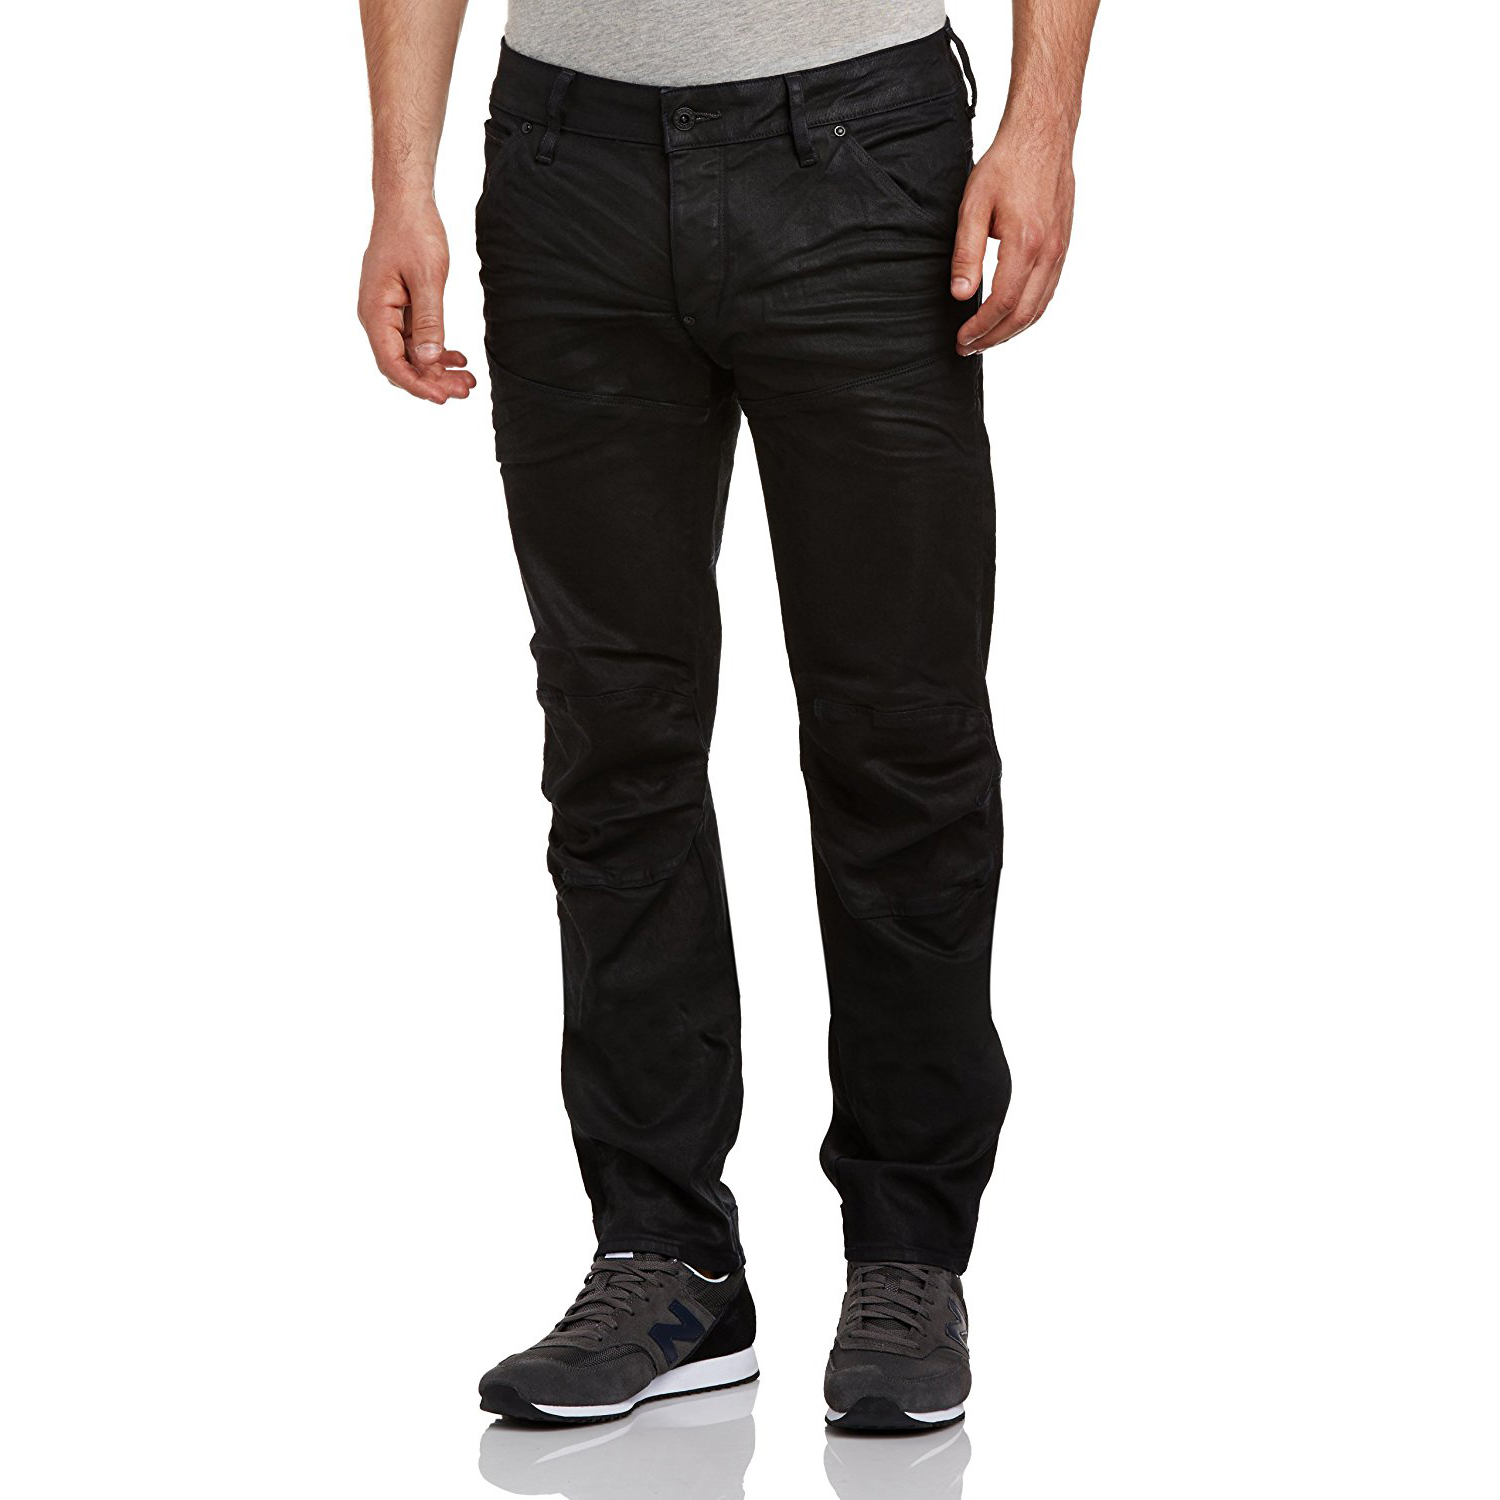 G-STAR 5620 3D Dimension Tapered Mens Jeans